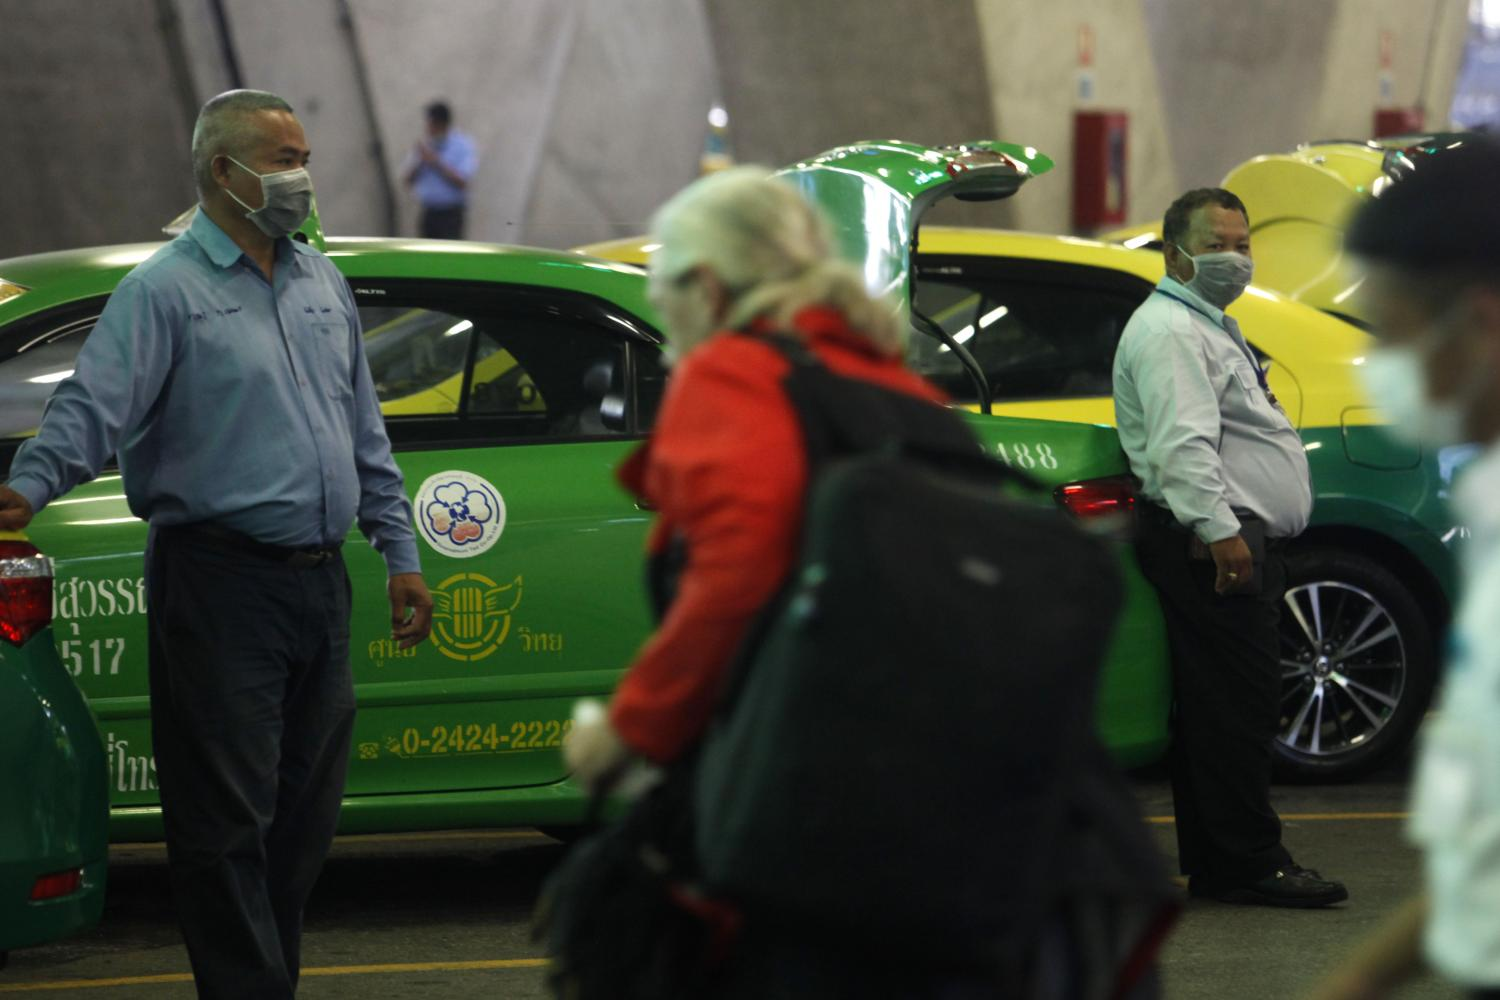 Taxi drivers wait for customers at Suvarnabhumi airport. Self-quarantine required for those infected with Covid-19 or at risk of infection is financially burdensome for low-income earners. (Photo by Wichan Charoenkiatpakul)